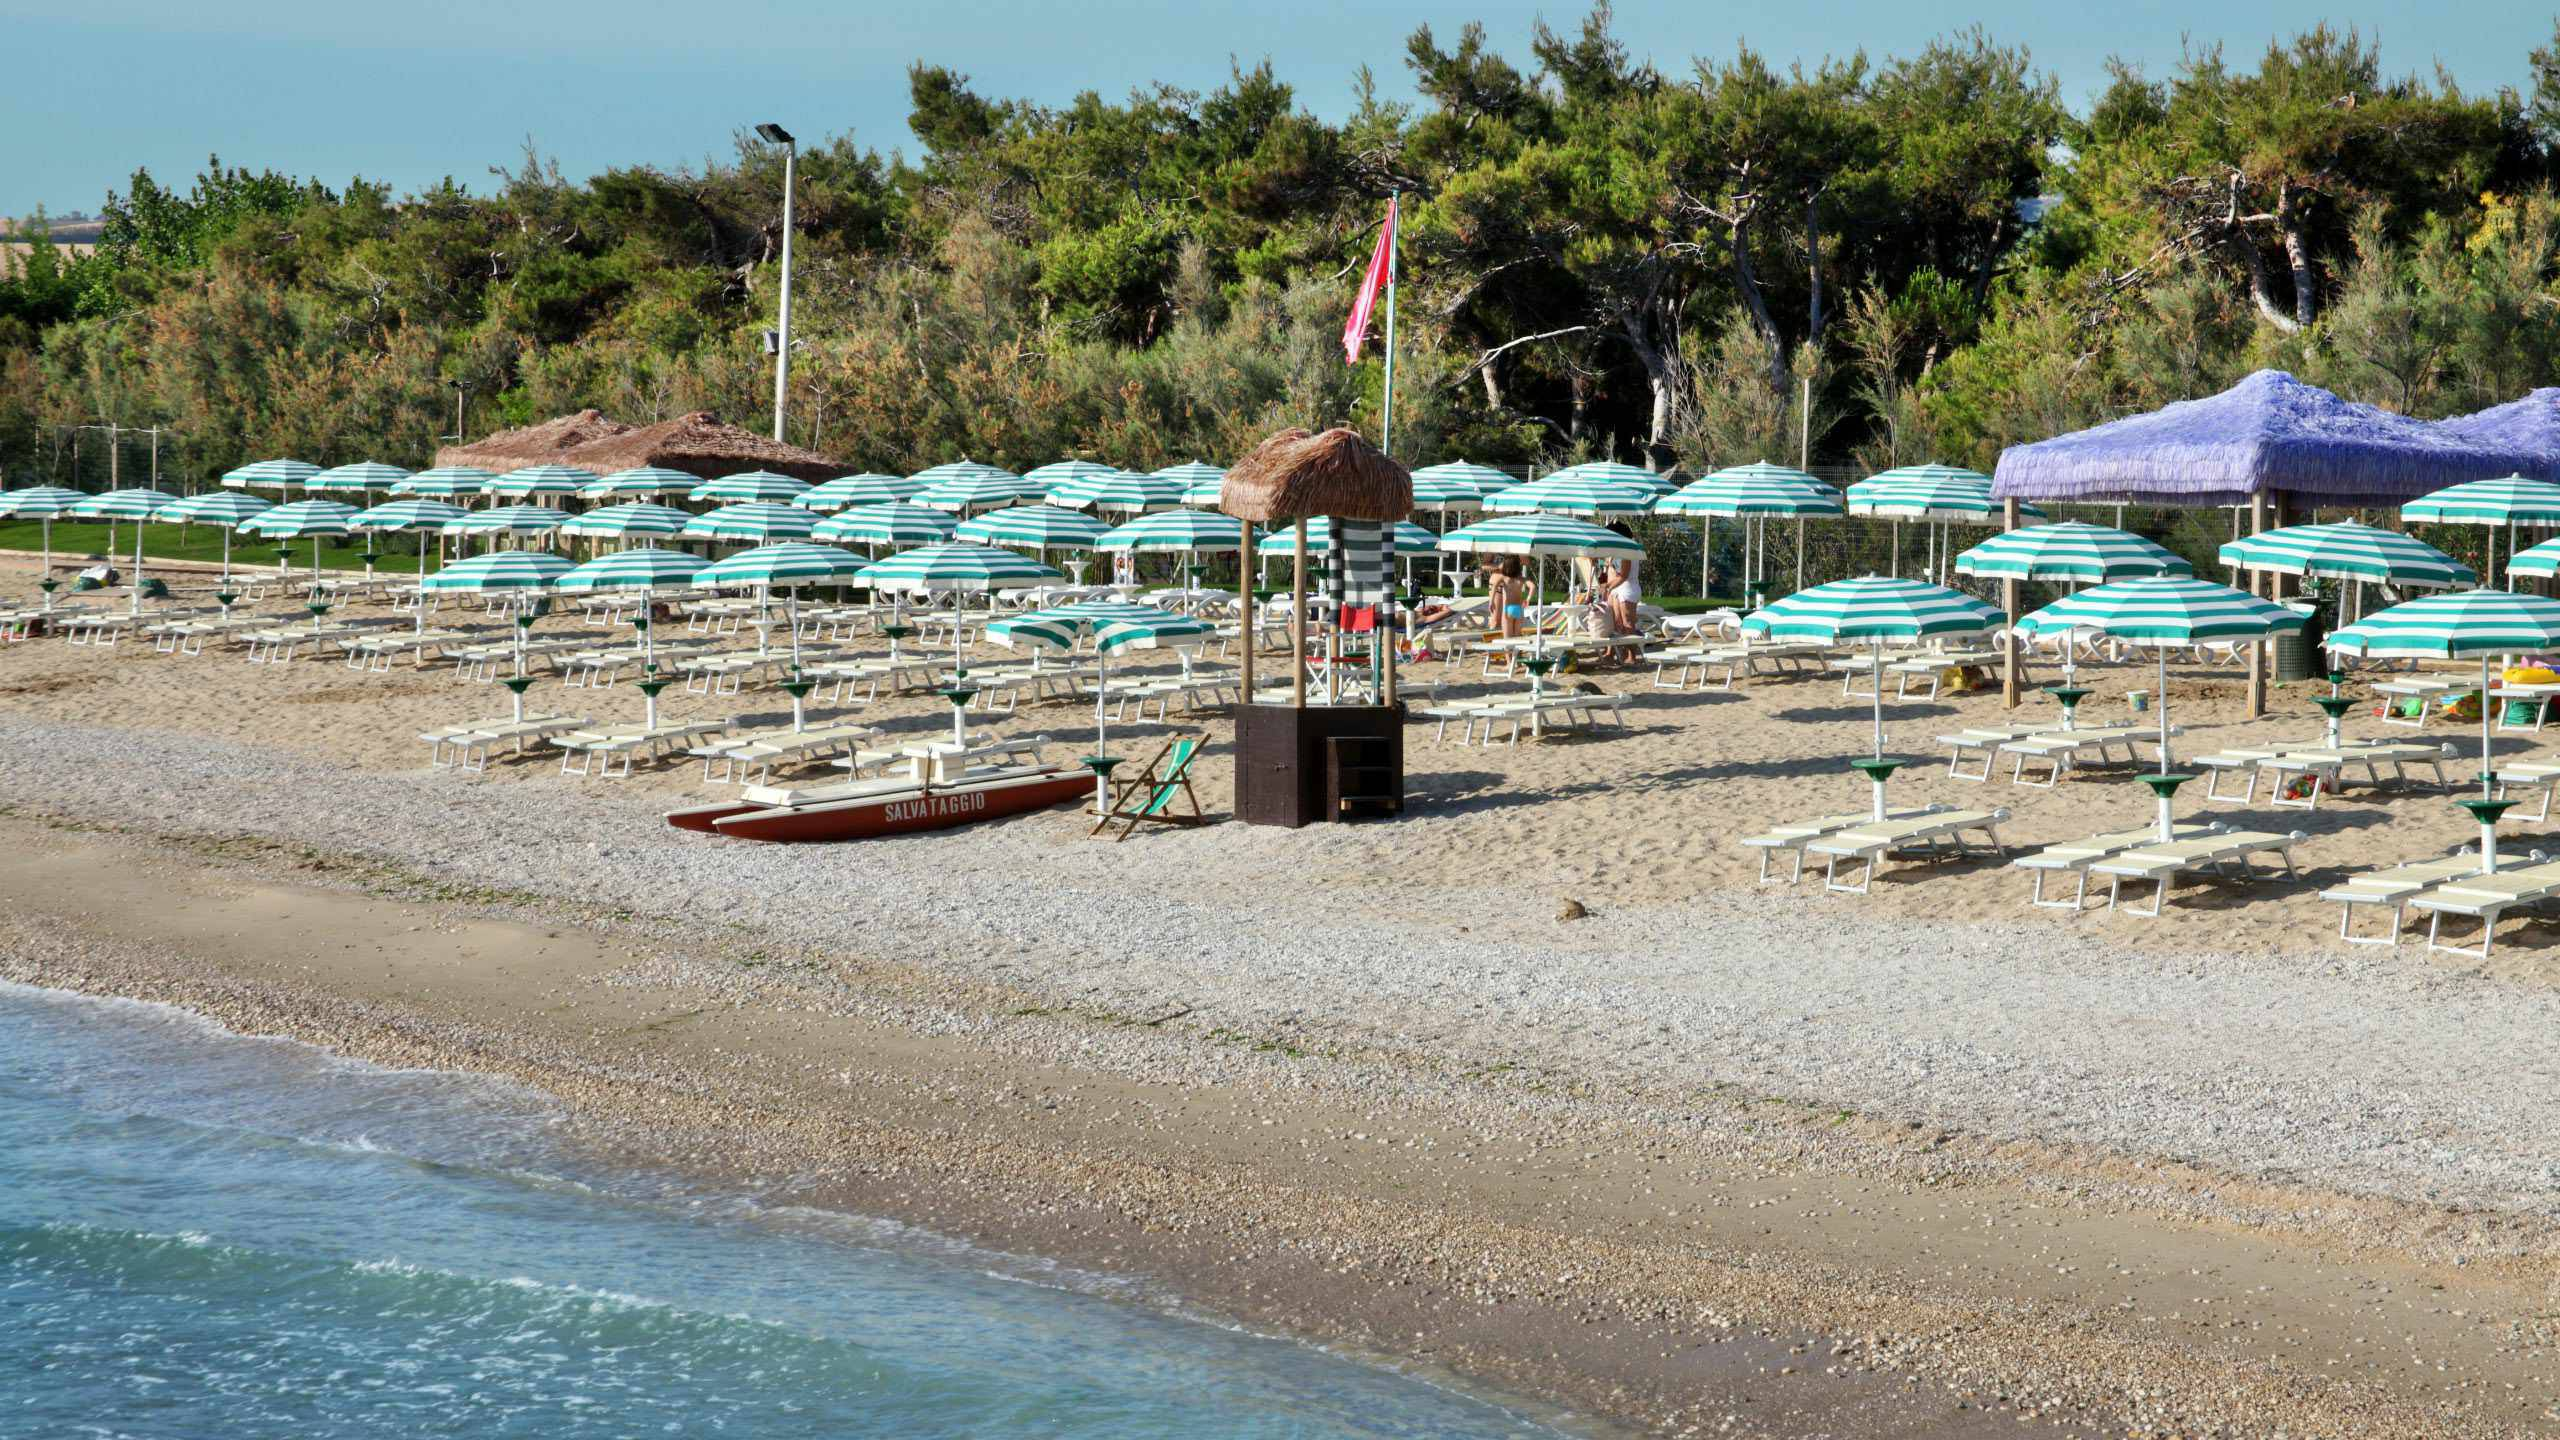 pineto-beach-village-camping-pineto-abruzzo-piscina-mare-37